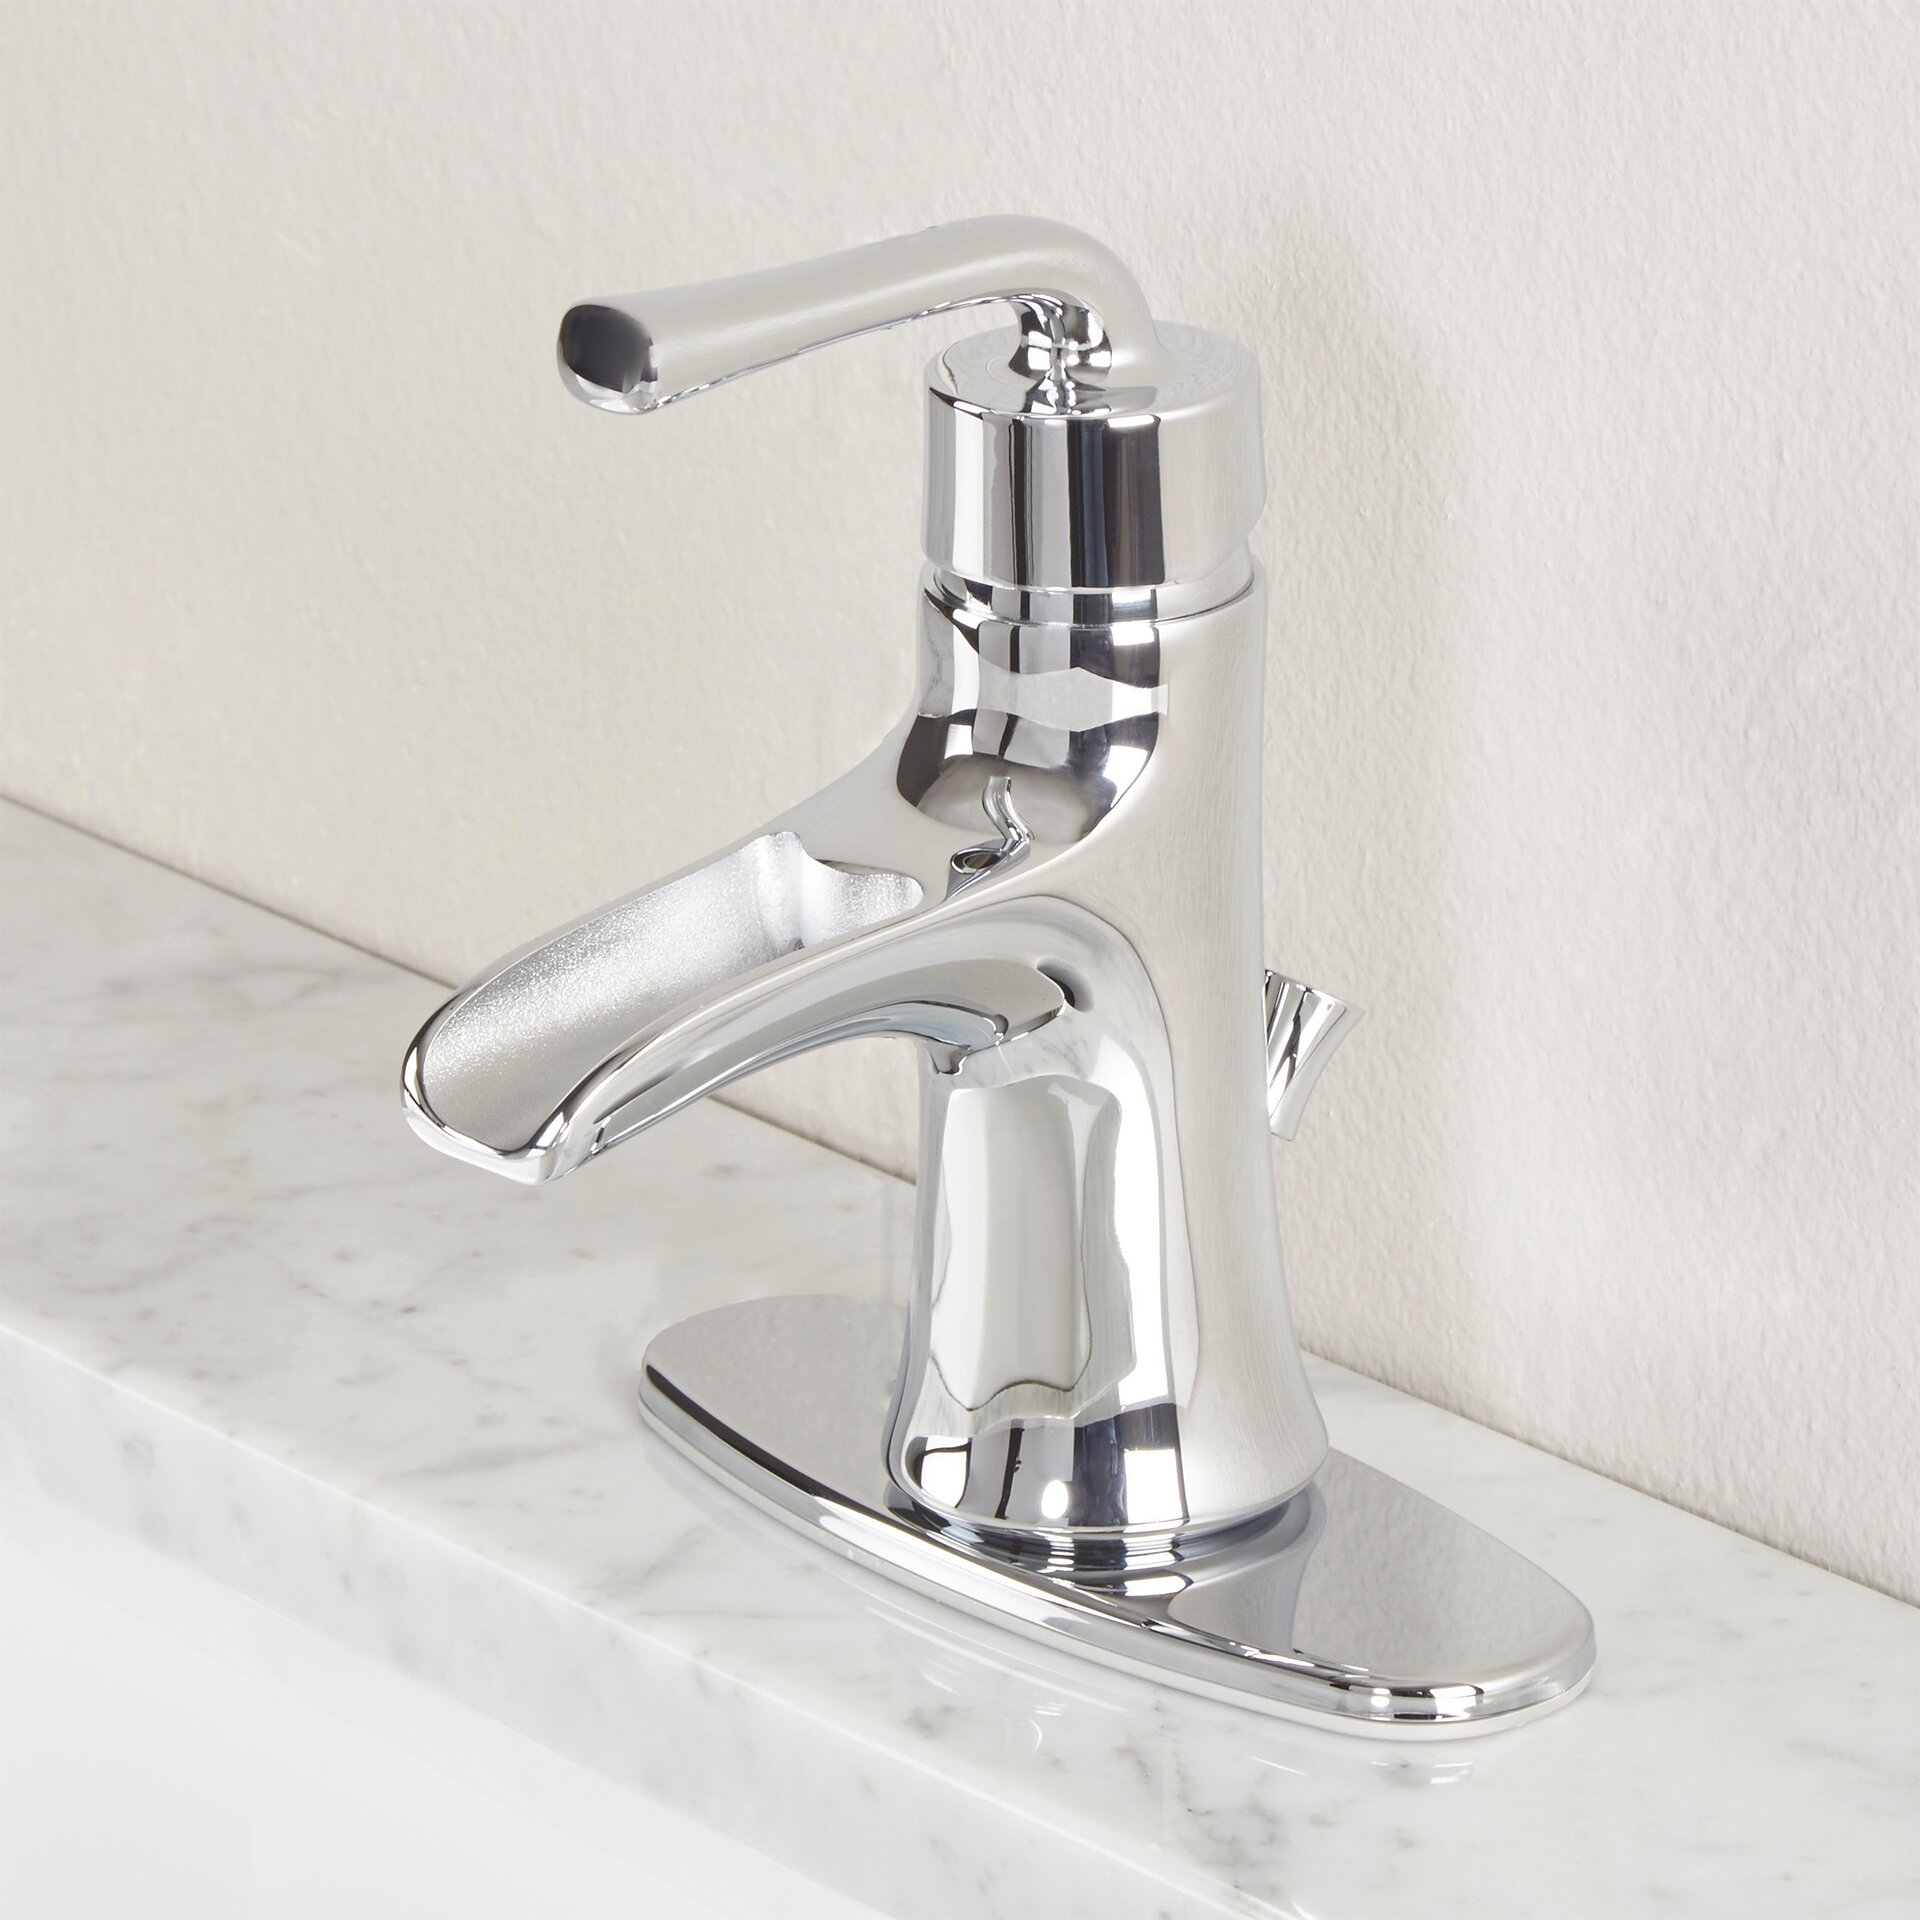 Premier Faucet Sanibel Single Handle Bathroom Faucet Reviews Wayfair